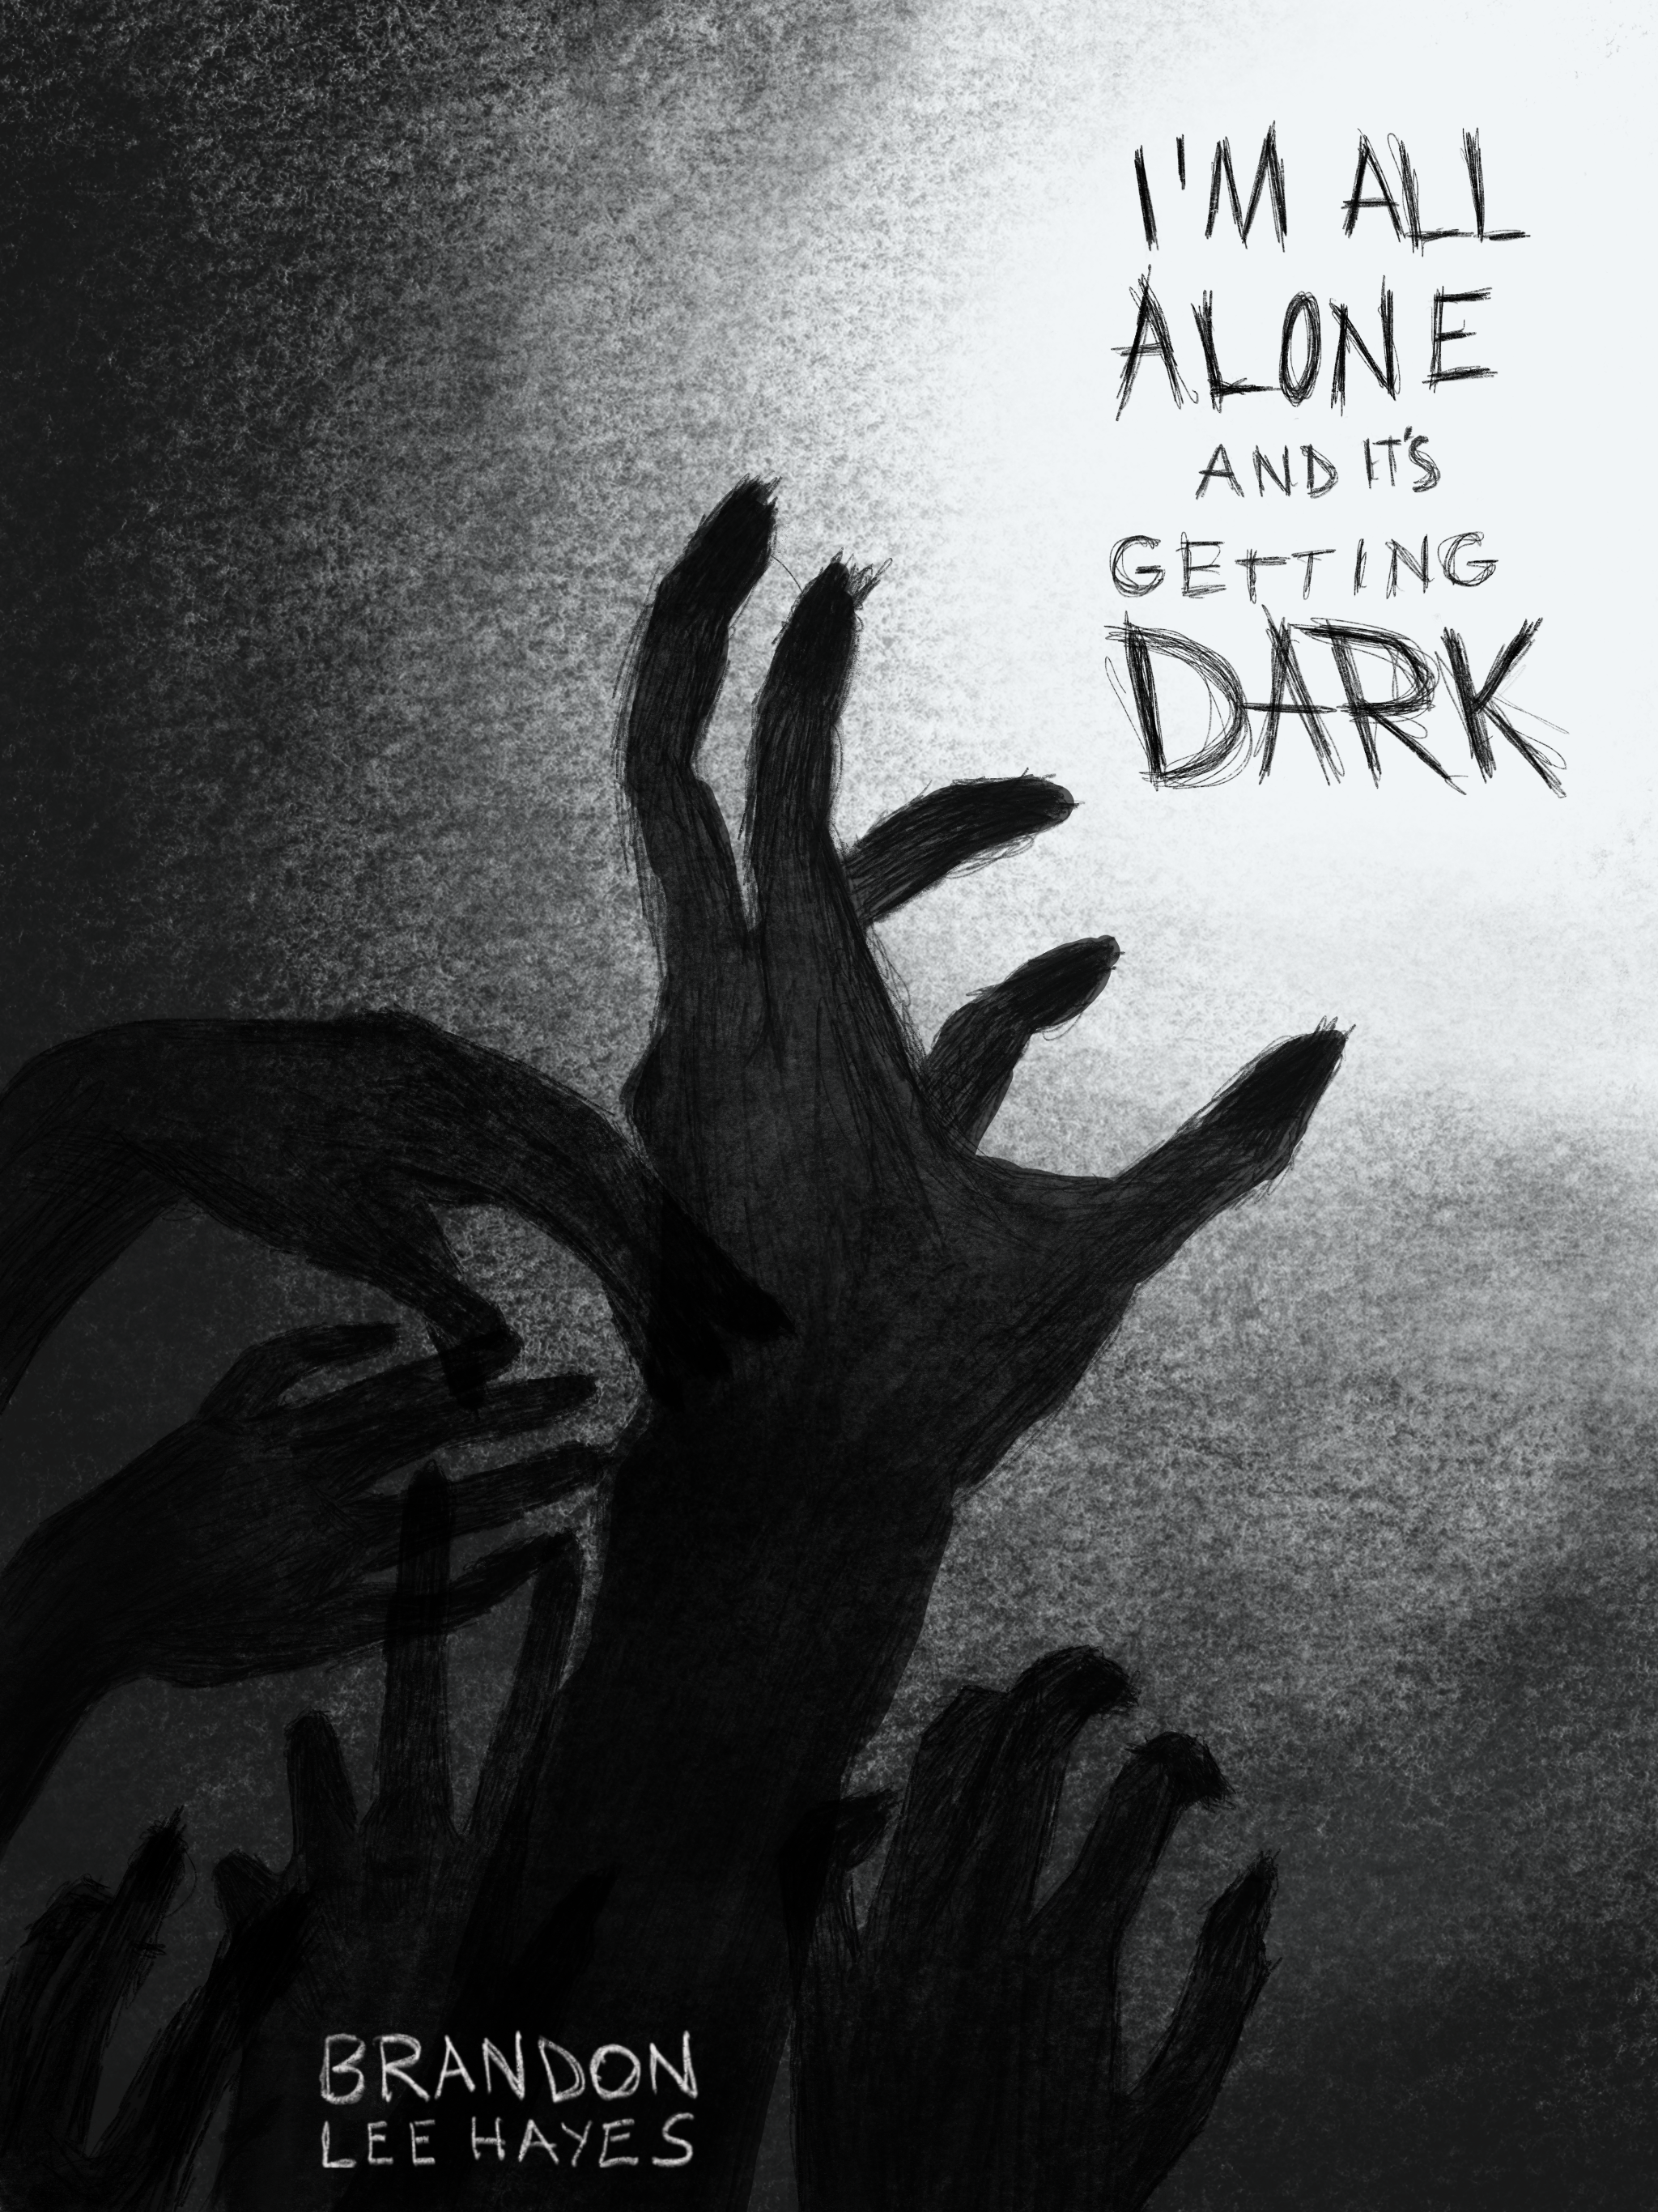 Cover image for I'm All Alone and It's Getting Dark. Shadowy hands reach from darkness grabbing at the stories title.